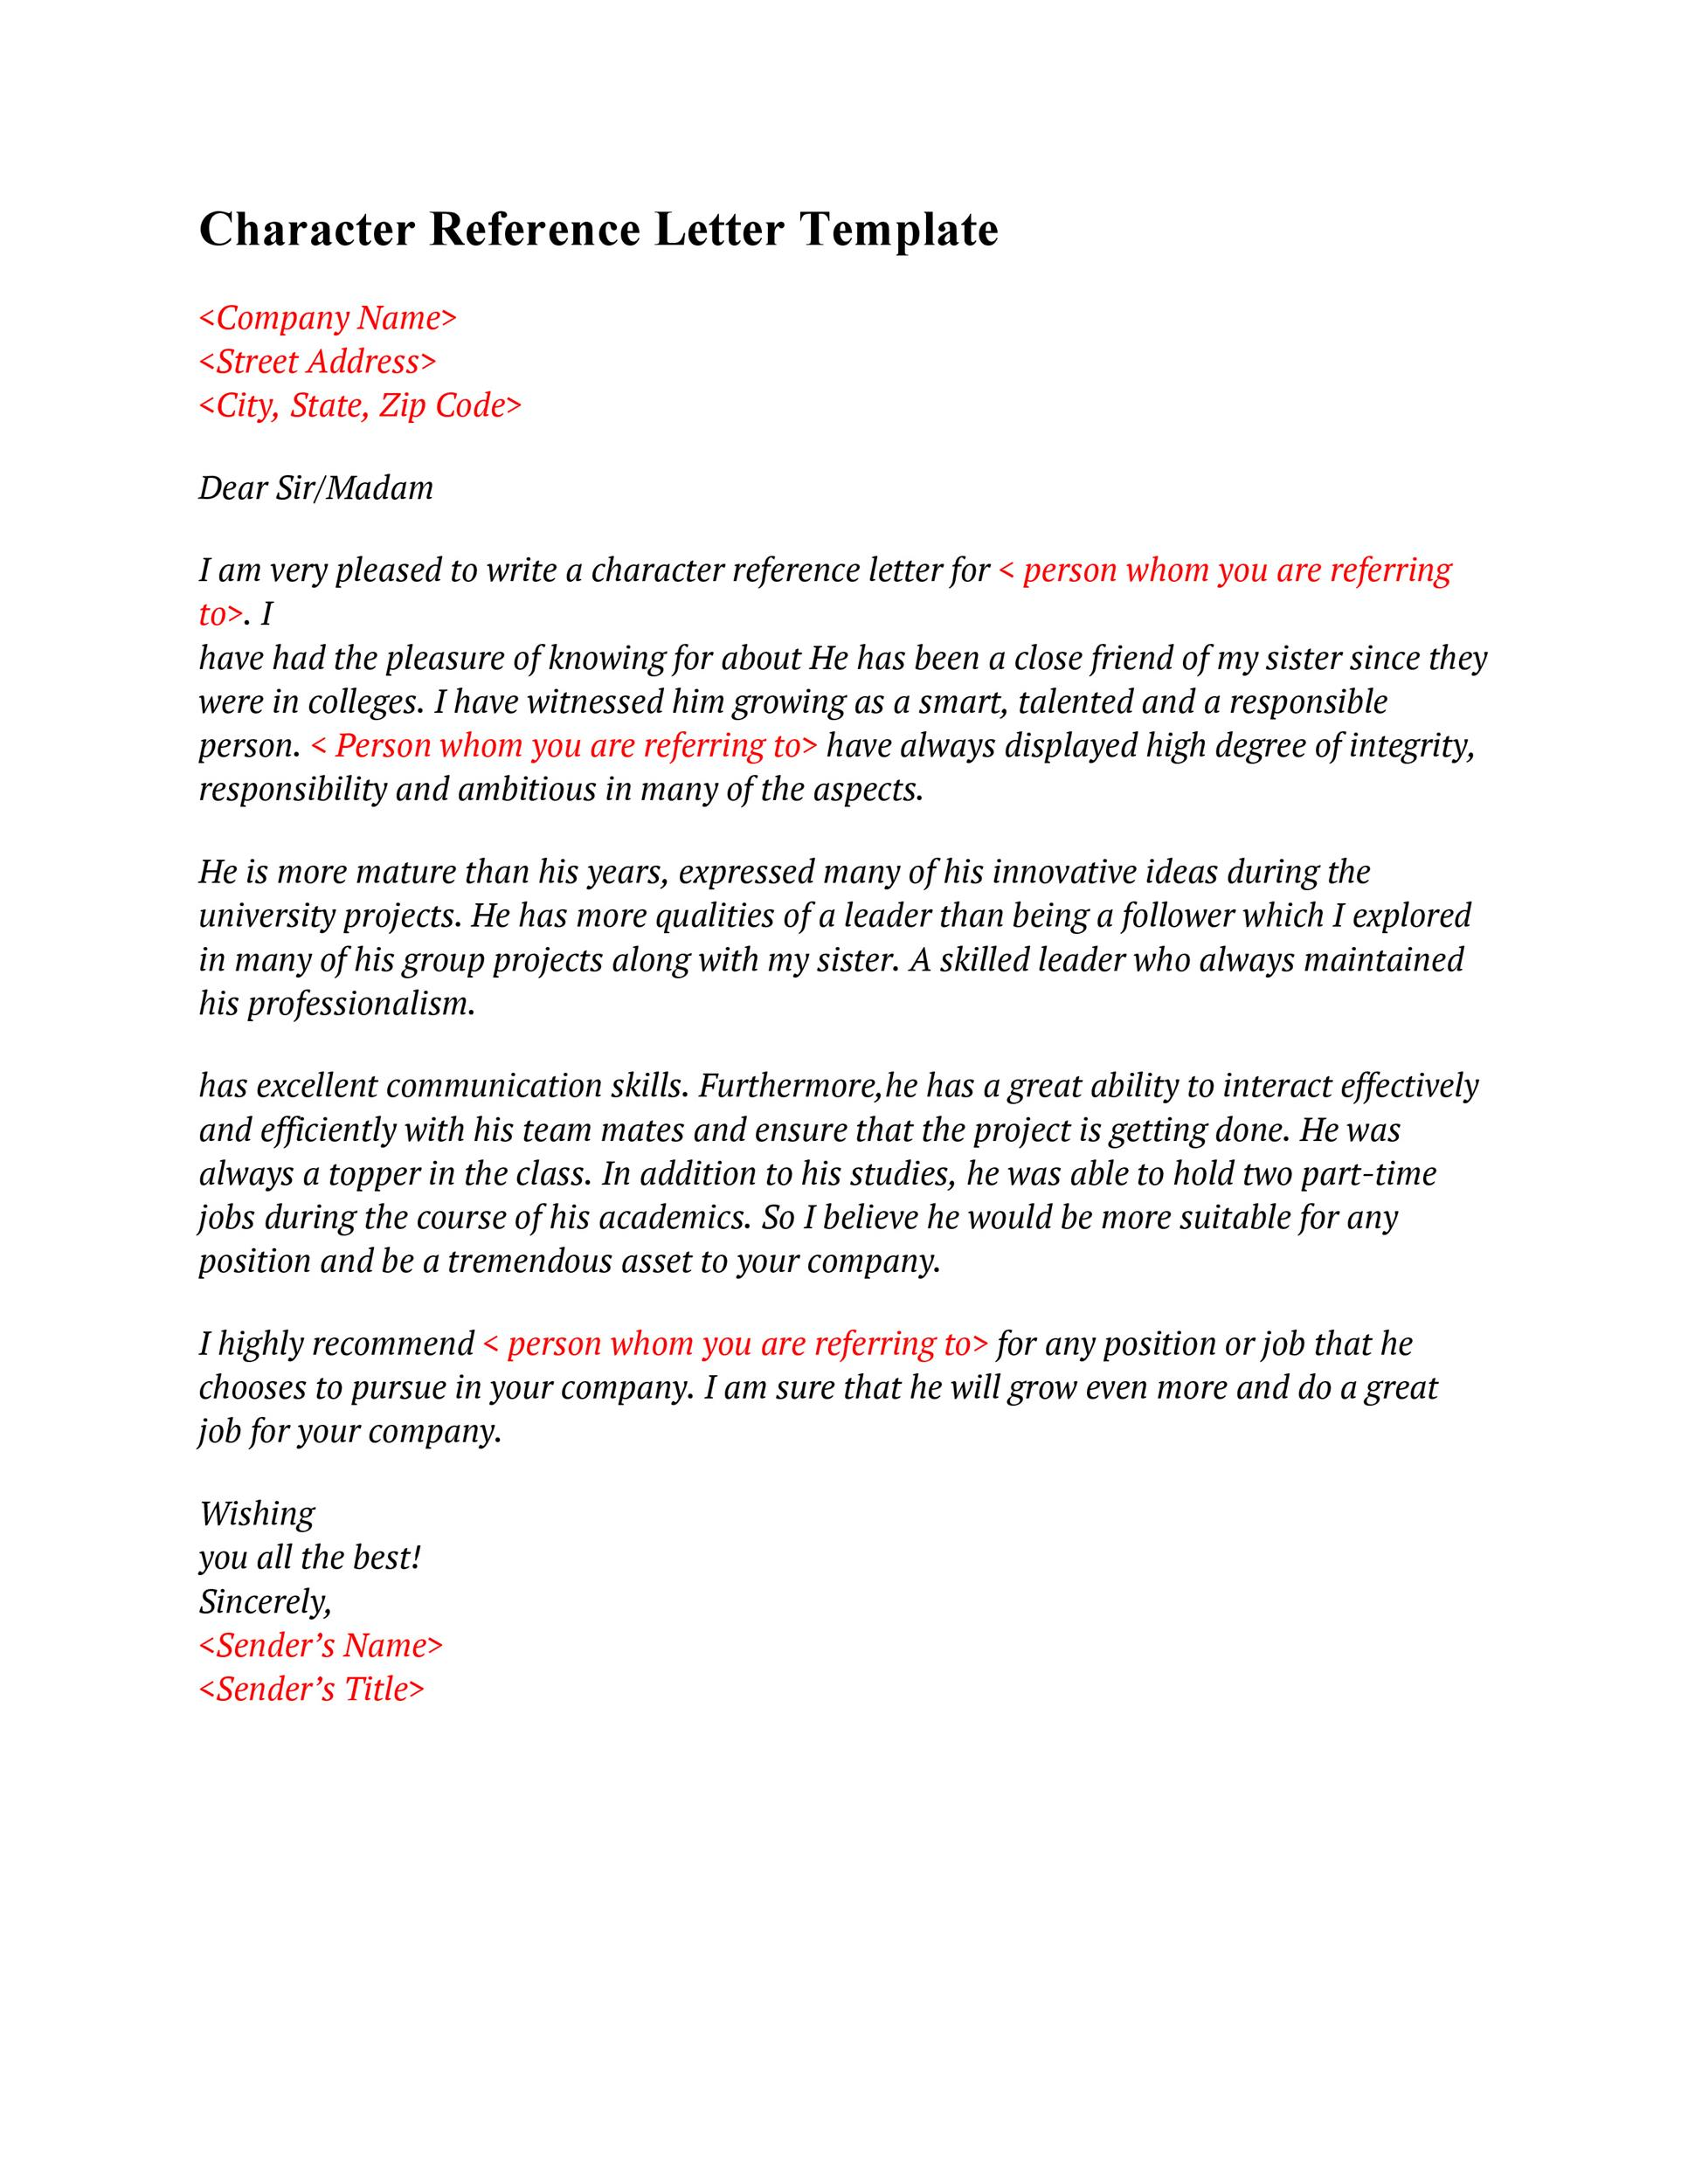 Application Letter For A Phd Program